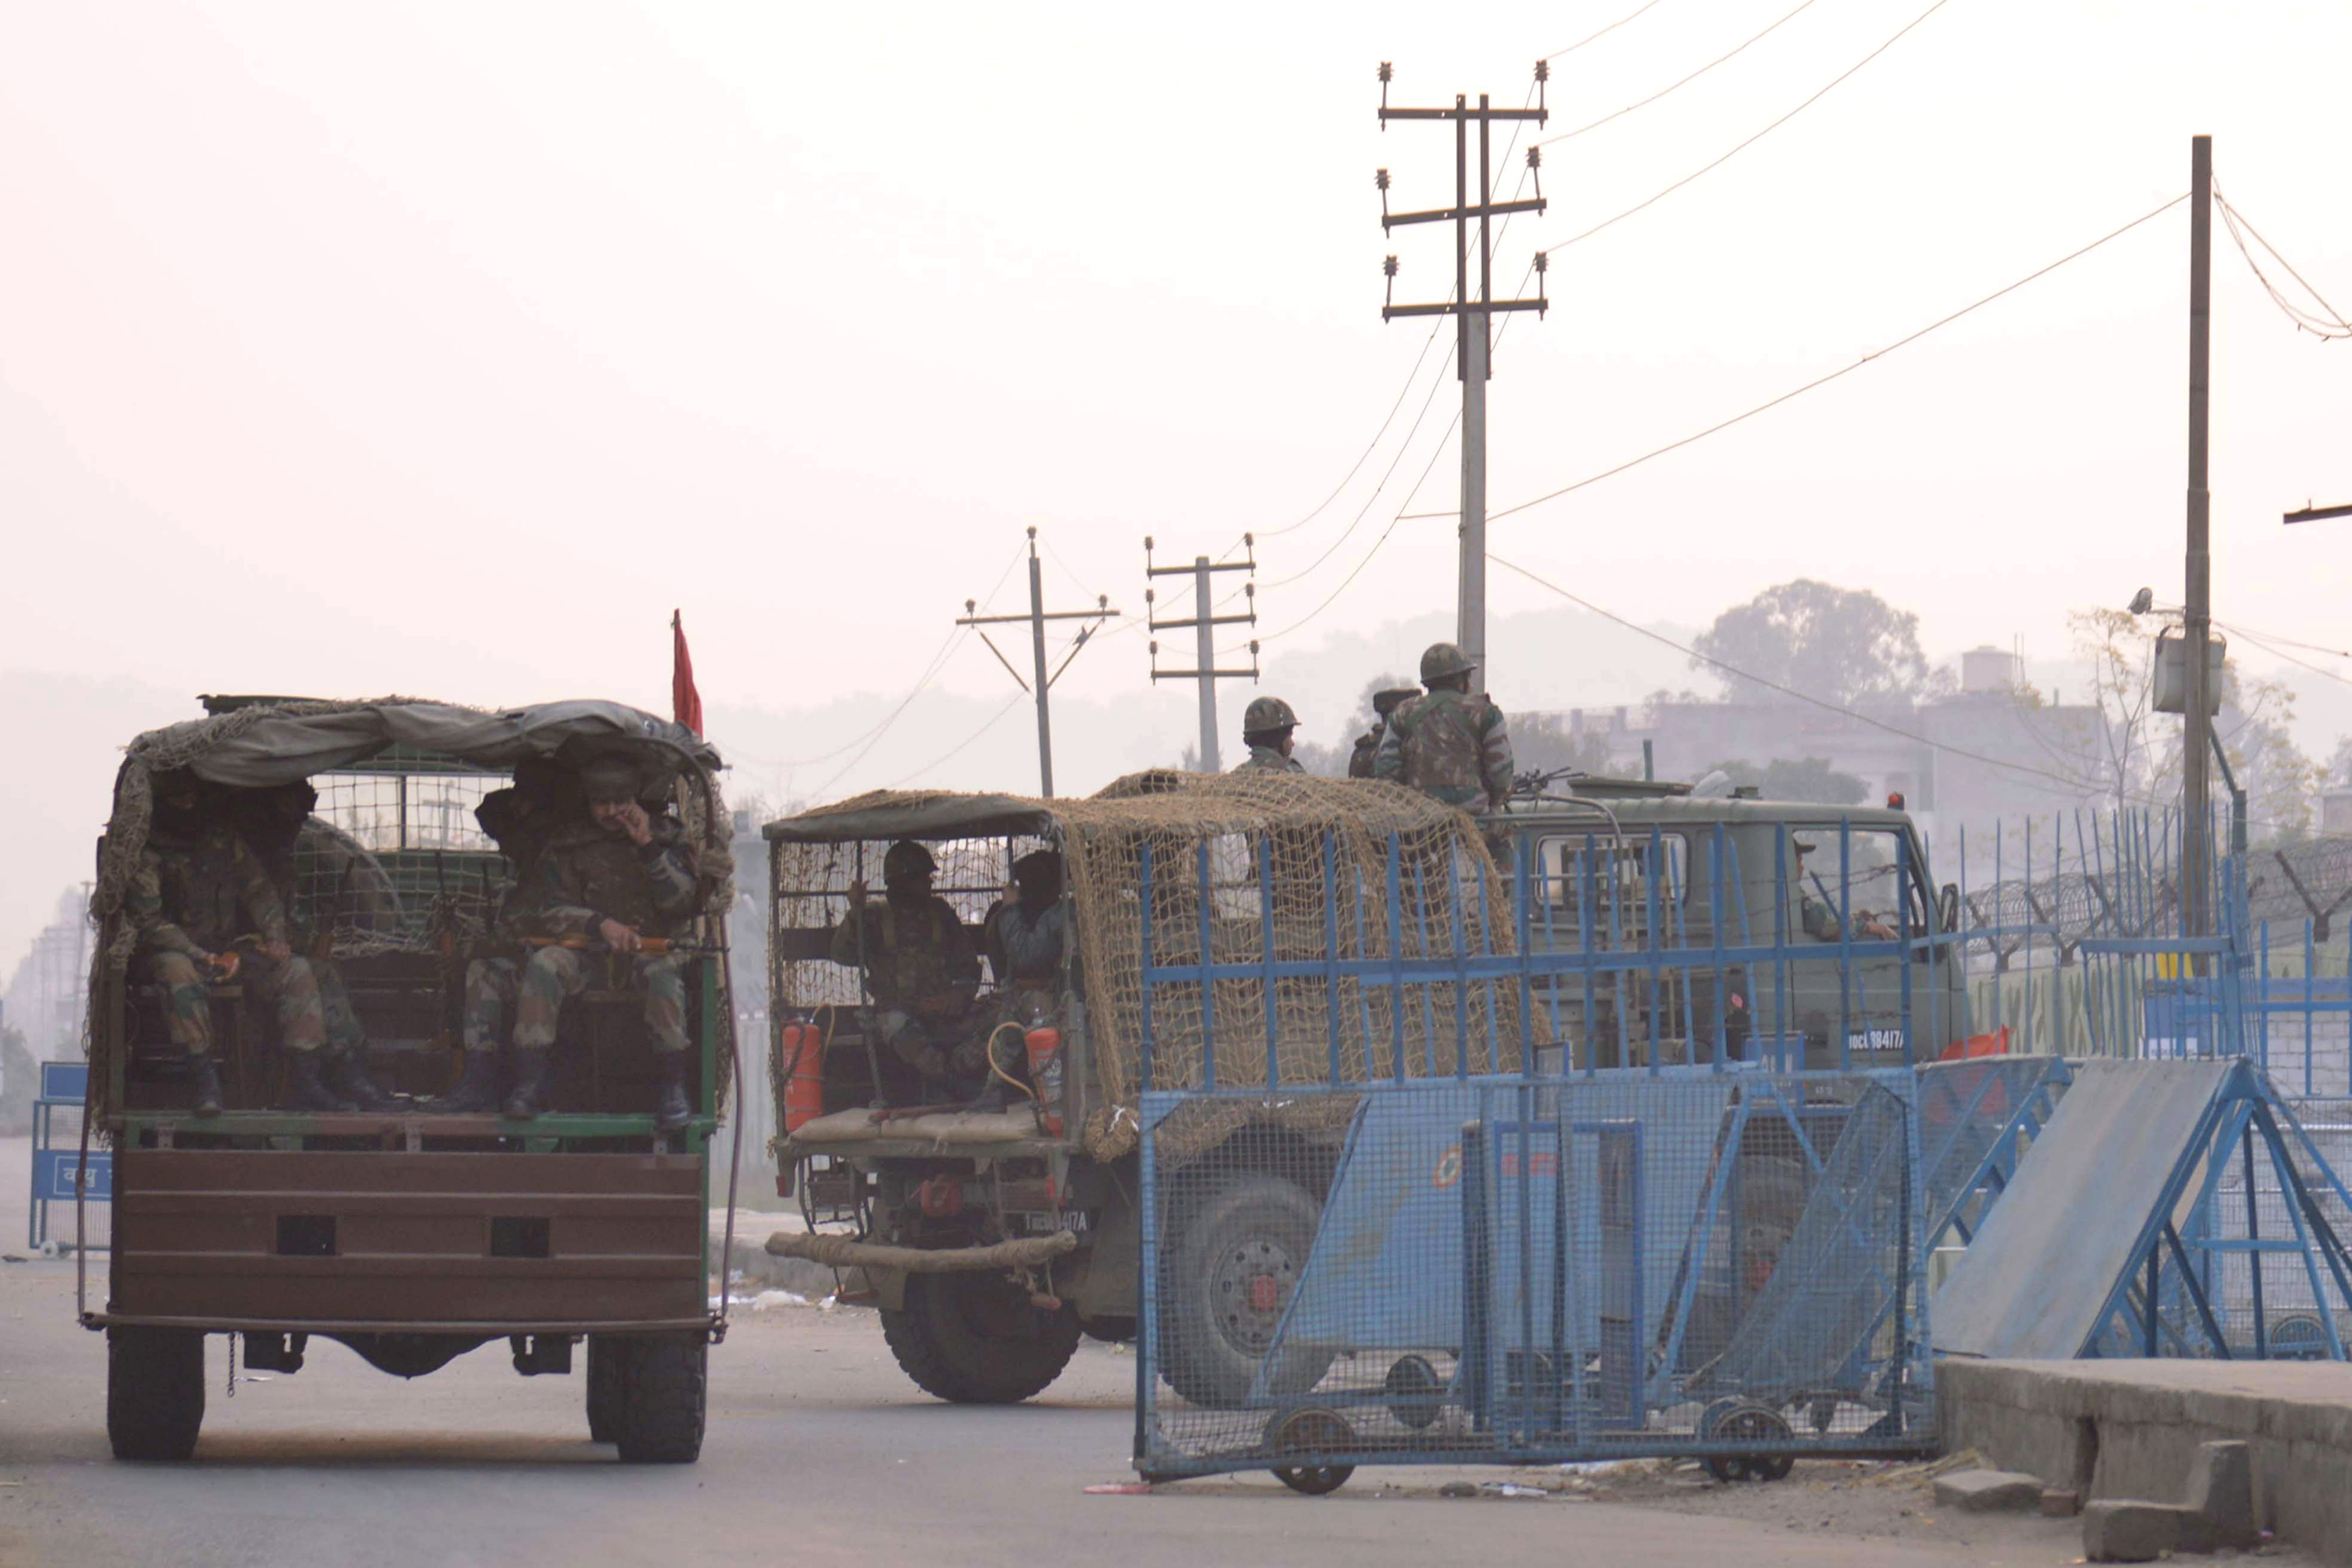 Indian army trucks transport troops to the air-force base in Pathankot on Jan. 4, 2016, after a weekend of fierce fighting with suspected Islamic insurgents, in which seven soldiers and five attackers were killed